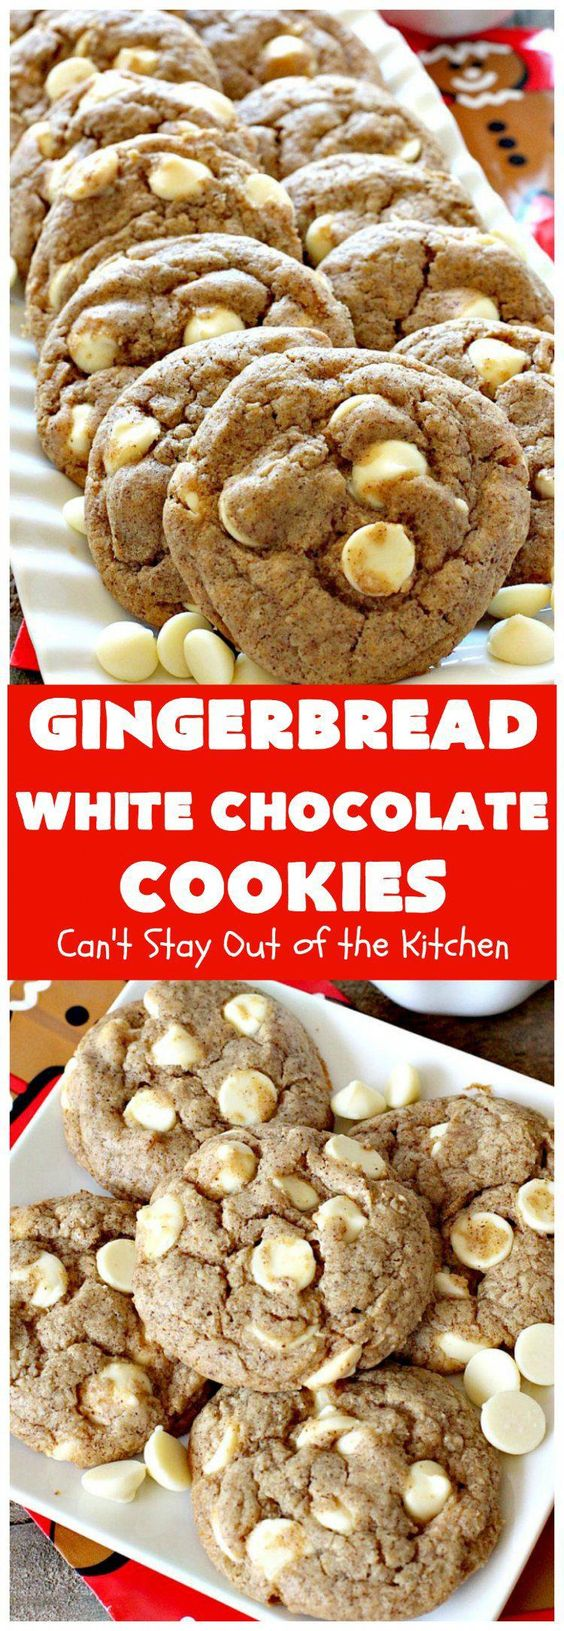 Gingerbread White Chocolate Cookies | This incredibly easy 5-ingredient cookie recipe is heavenly. It's terrific for holiday baking, Christmas cookie exchanges & office parties. #christmascookies